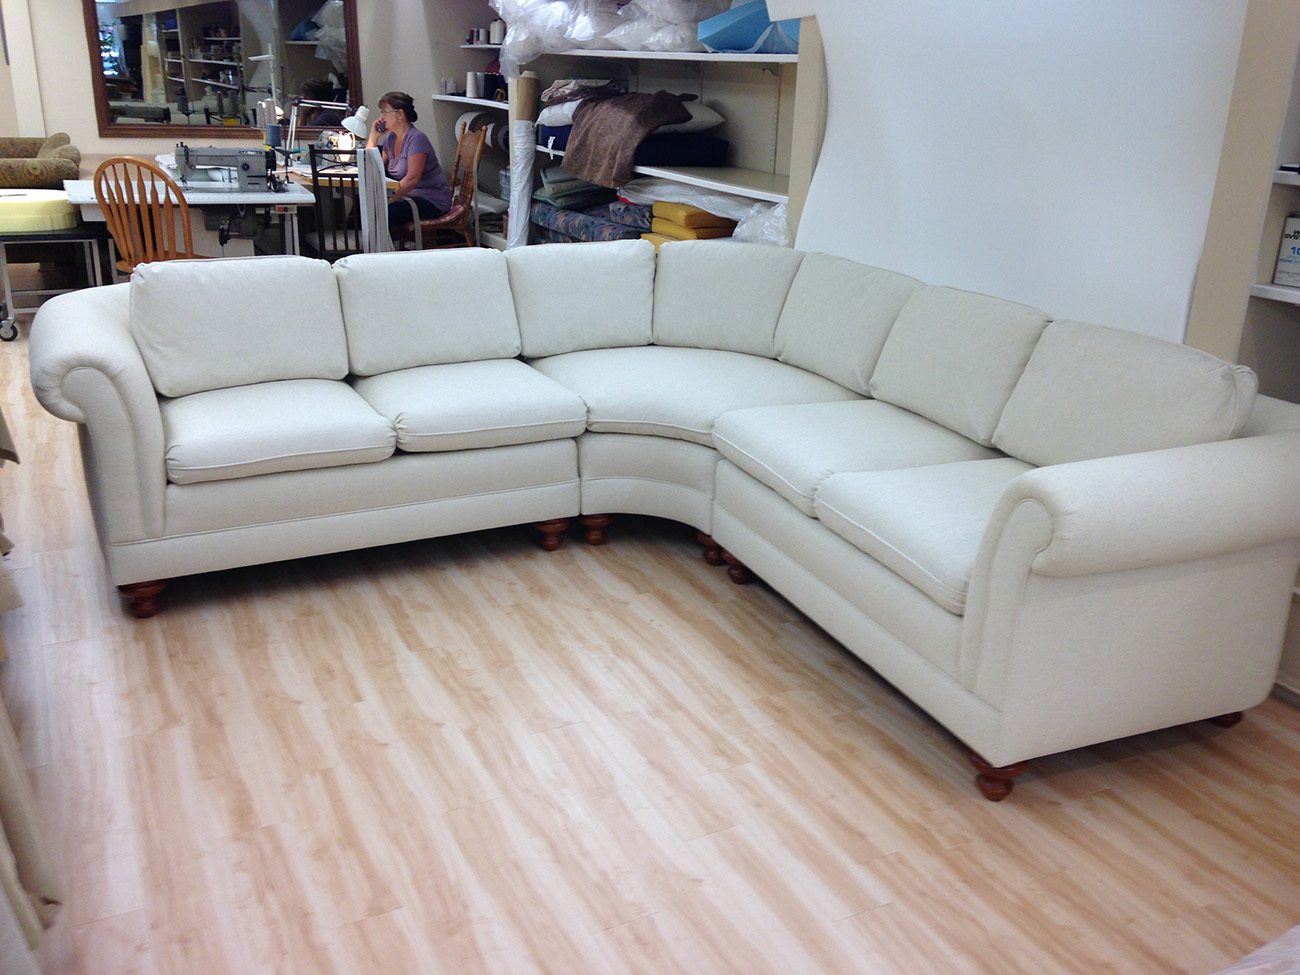 Sectional sofa re upholstery foamland and ted 39 s for Furniture upholstery